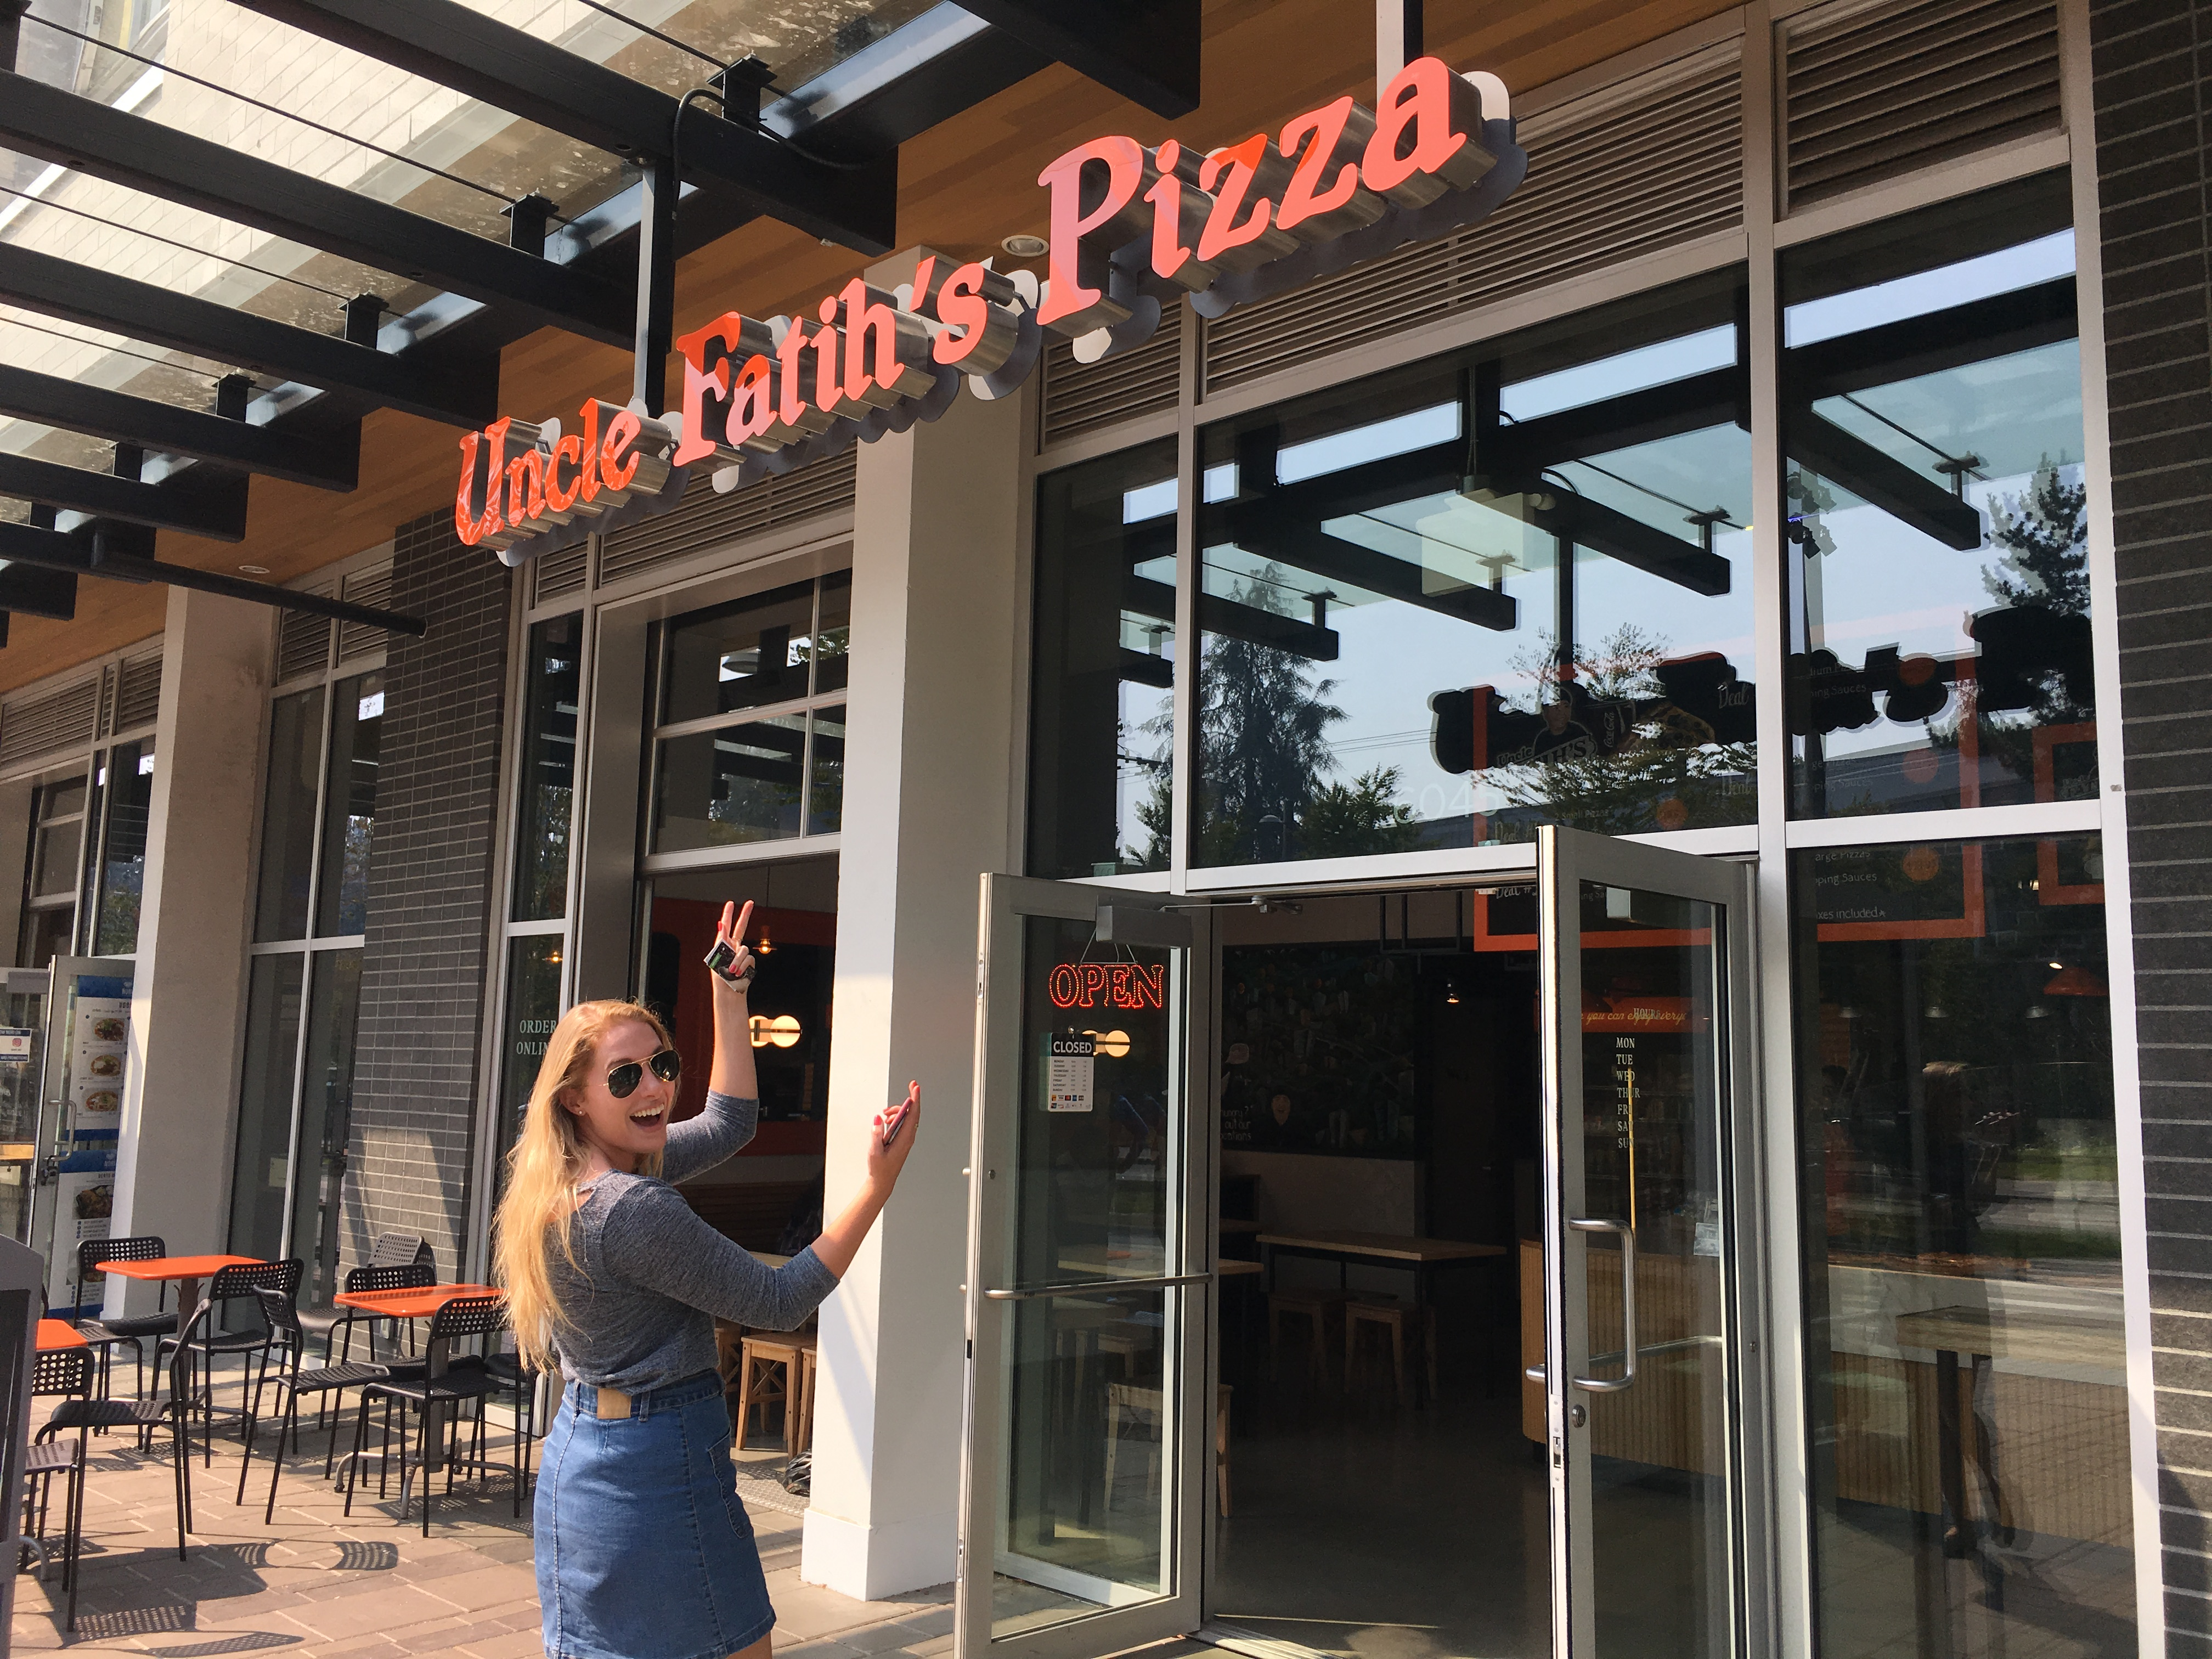 Sarah pointing at Uncle Fatihs Pizza